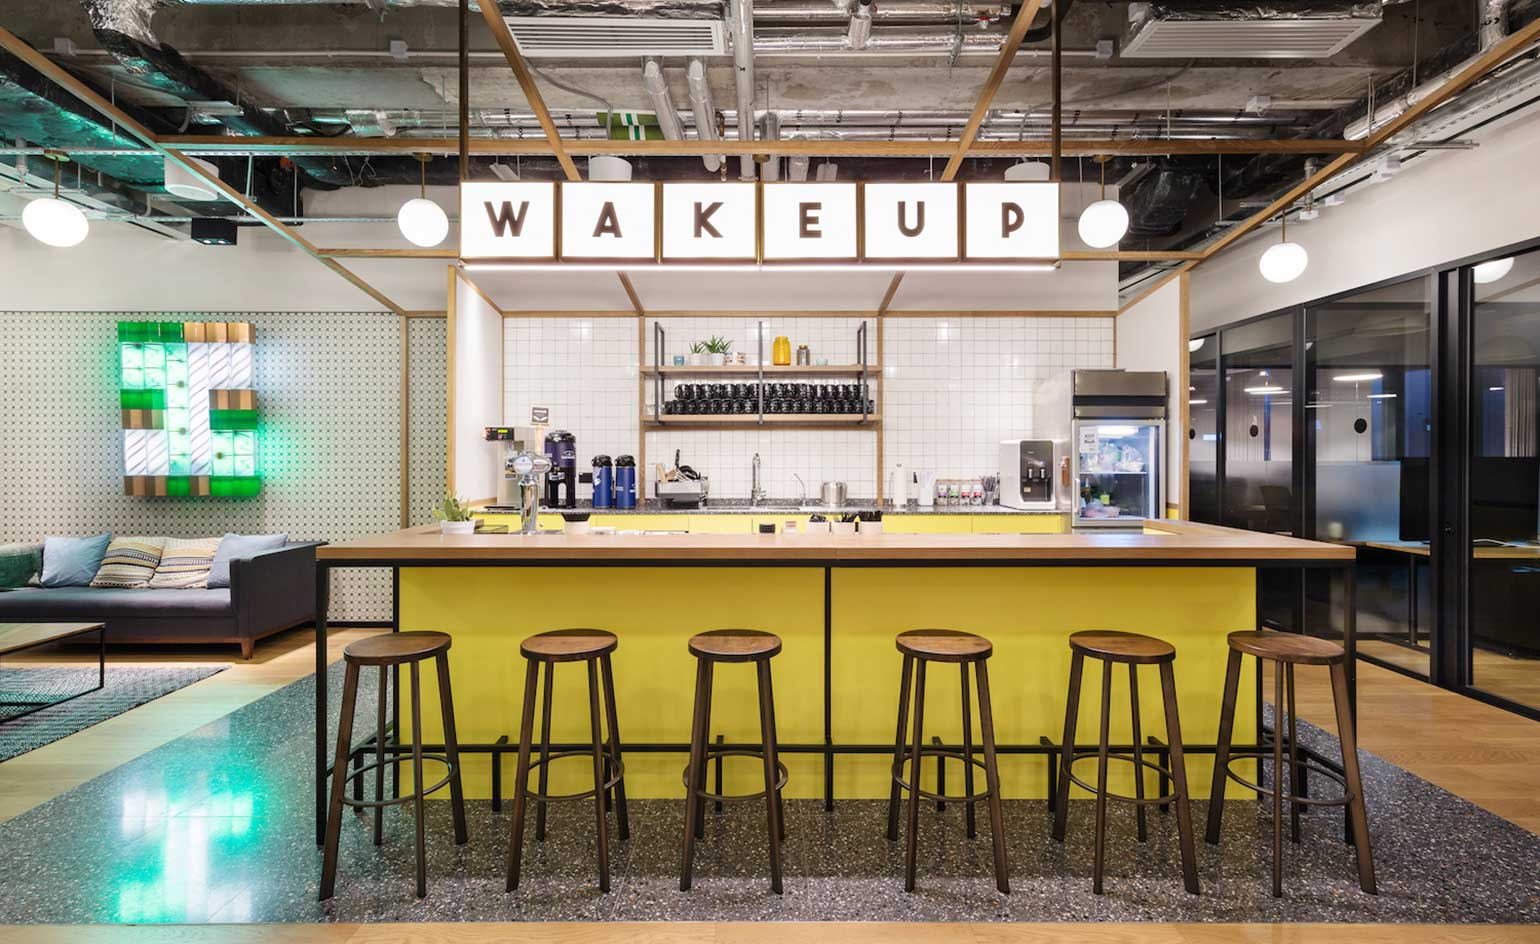 All in a day s work nelson chow designs the new space for wework s hong kong outpost wallpaper Kitchen design companies hong kong